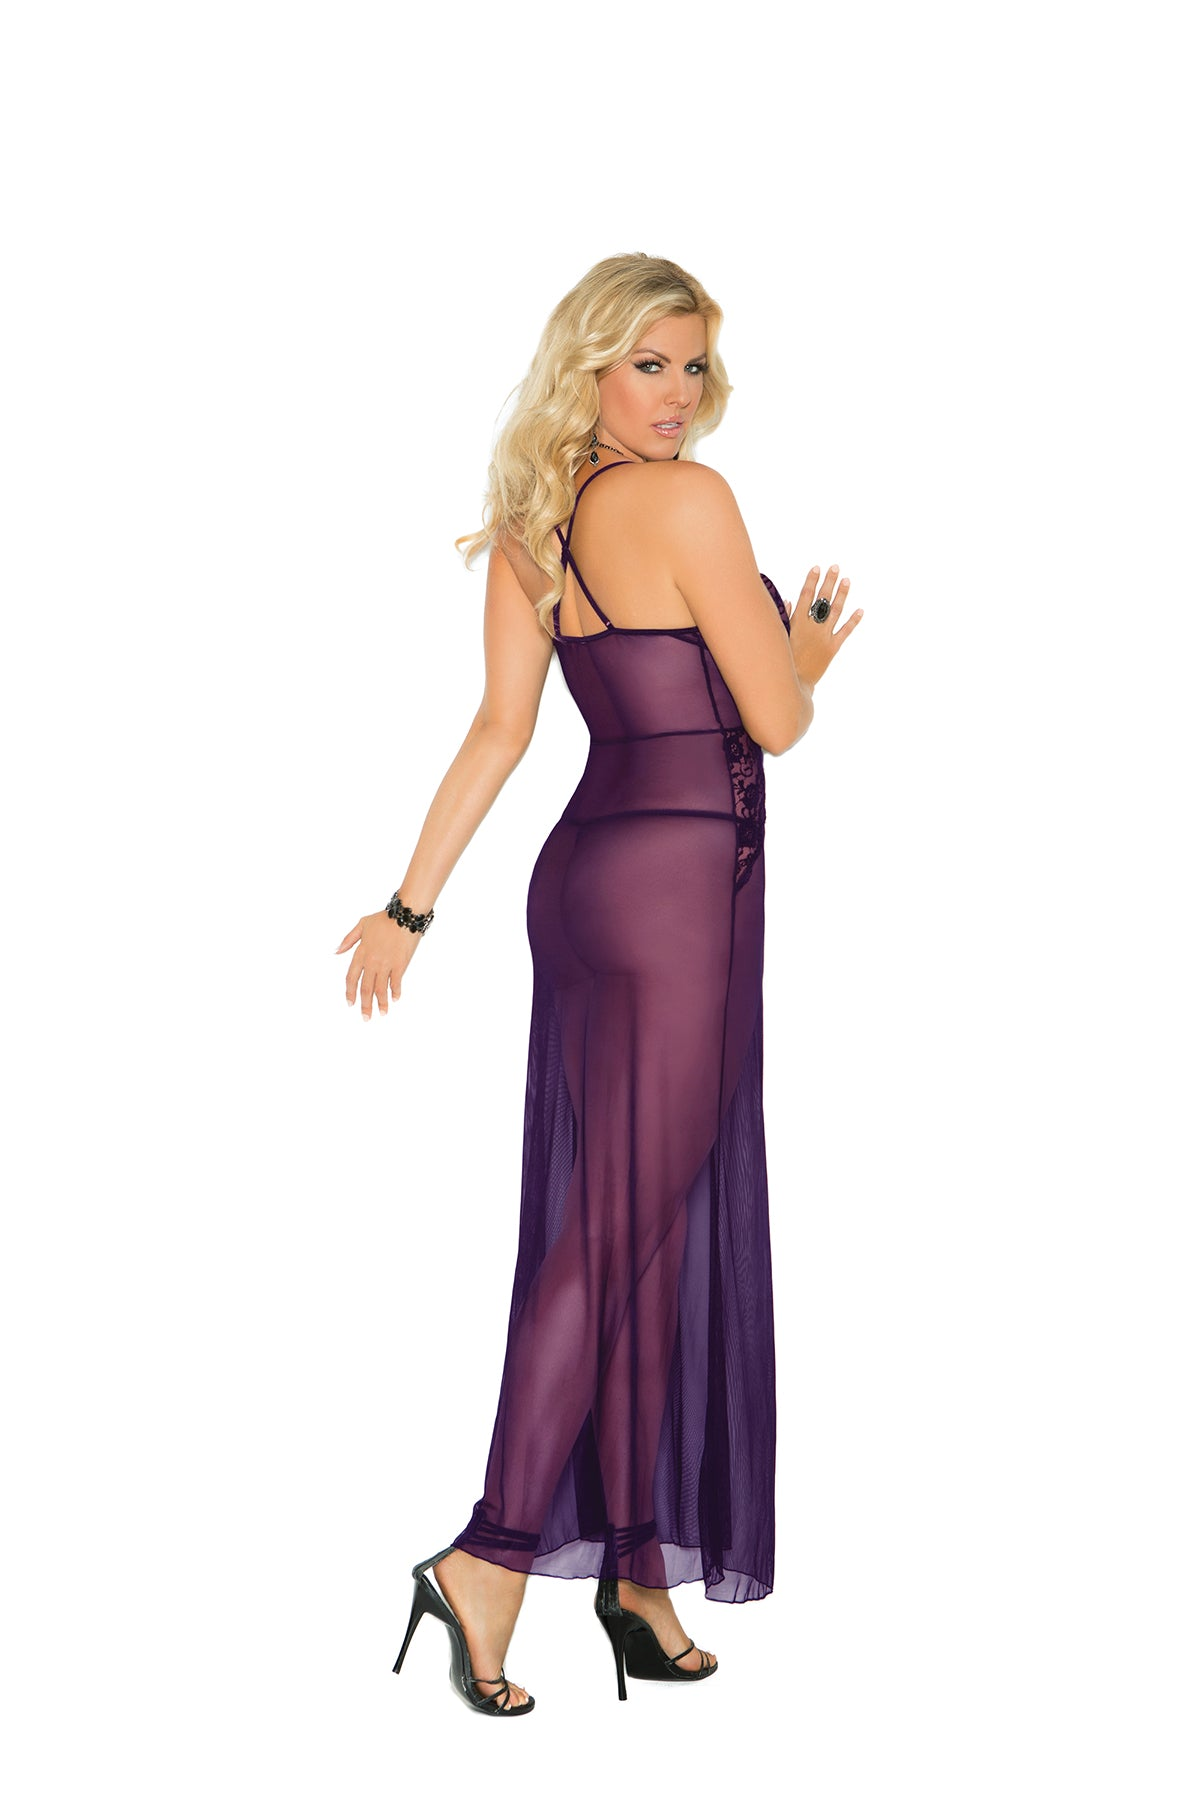 Mesh Night Gown-comes in plus size